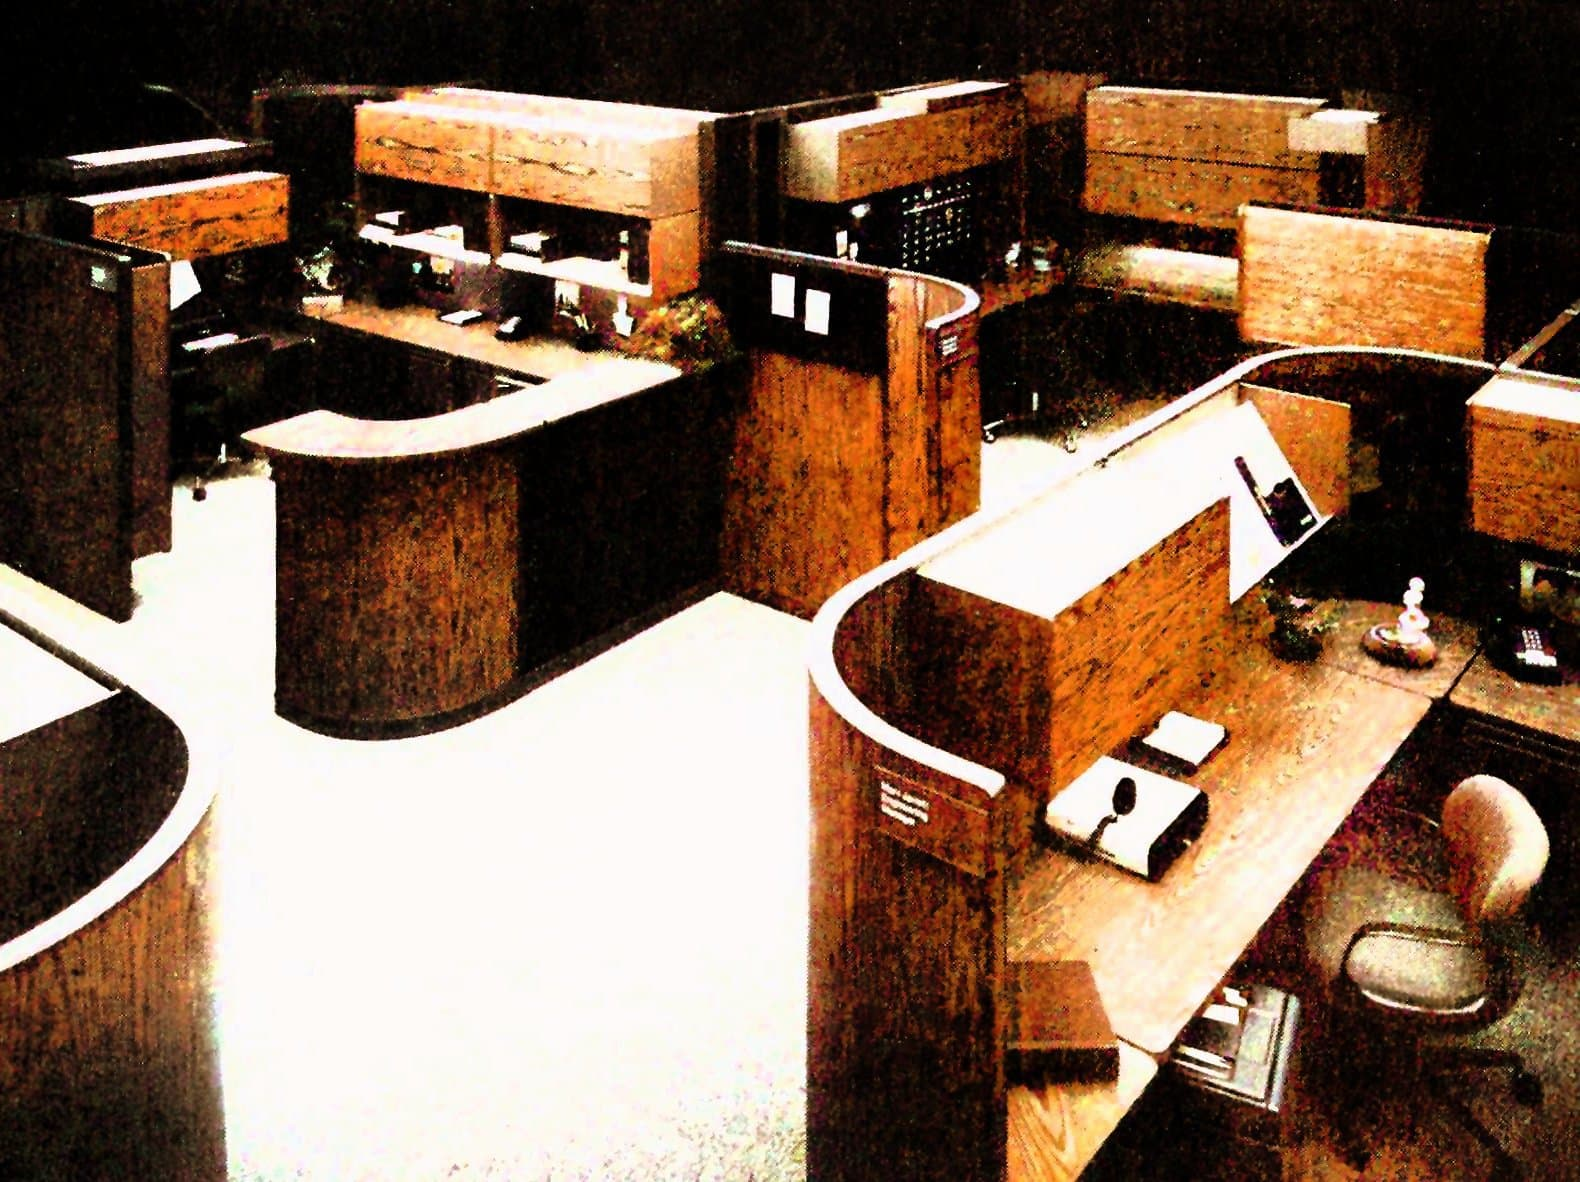 Vintage open plan office arrangements with cubicles - Workplaces from the 1970s (3)